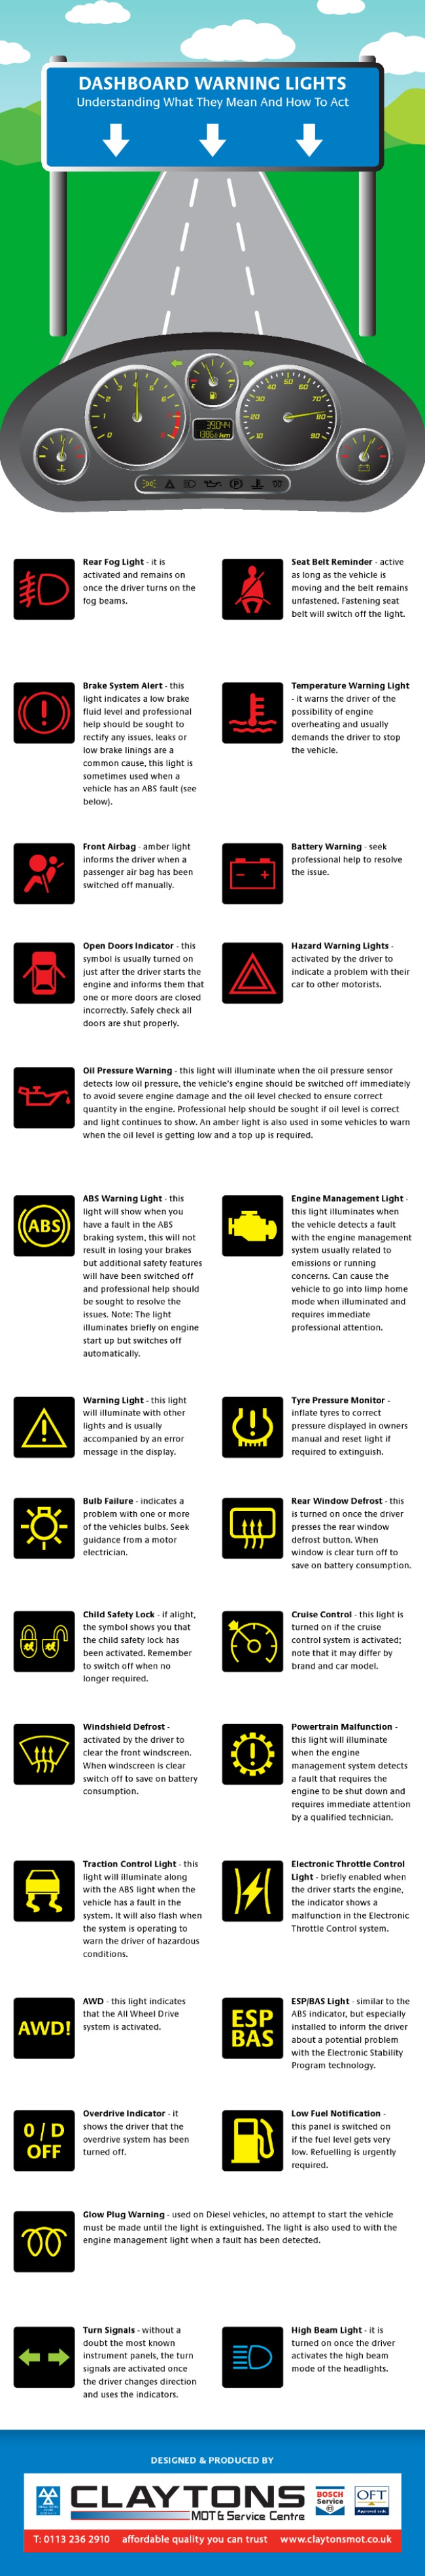 Understanding what dashboard warning lights mean